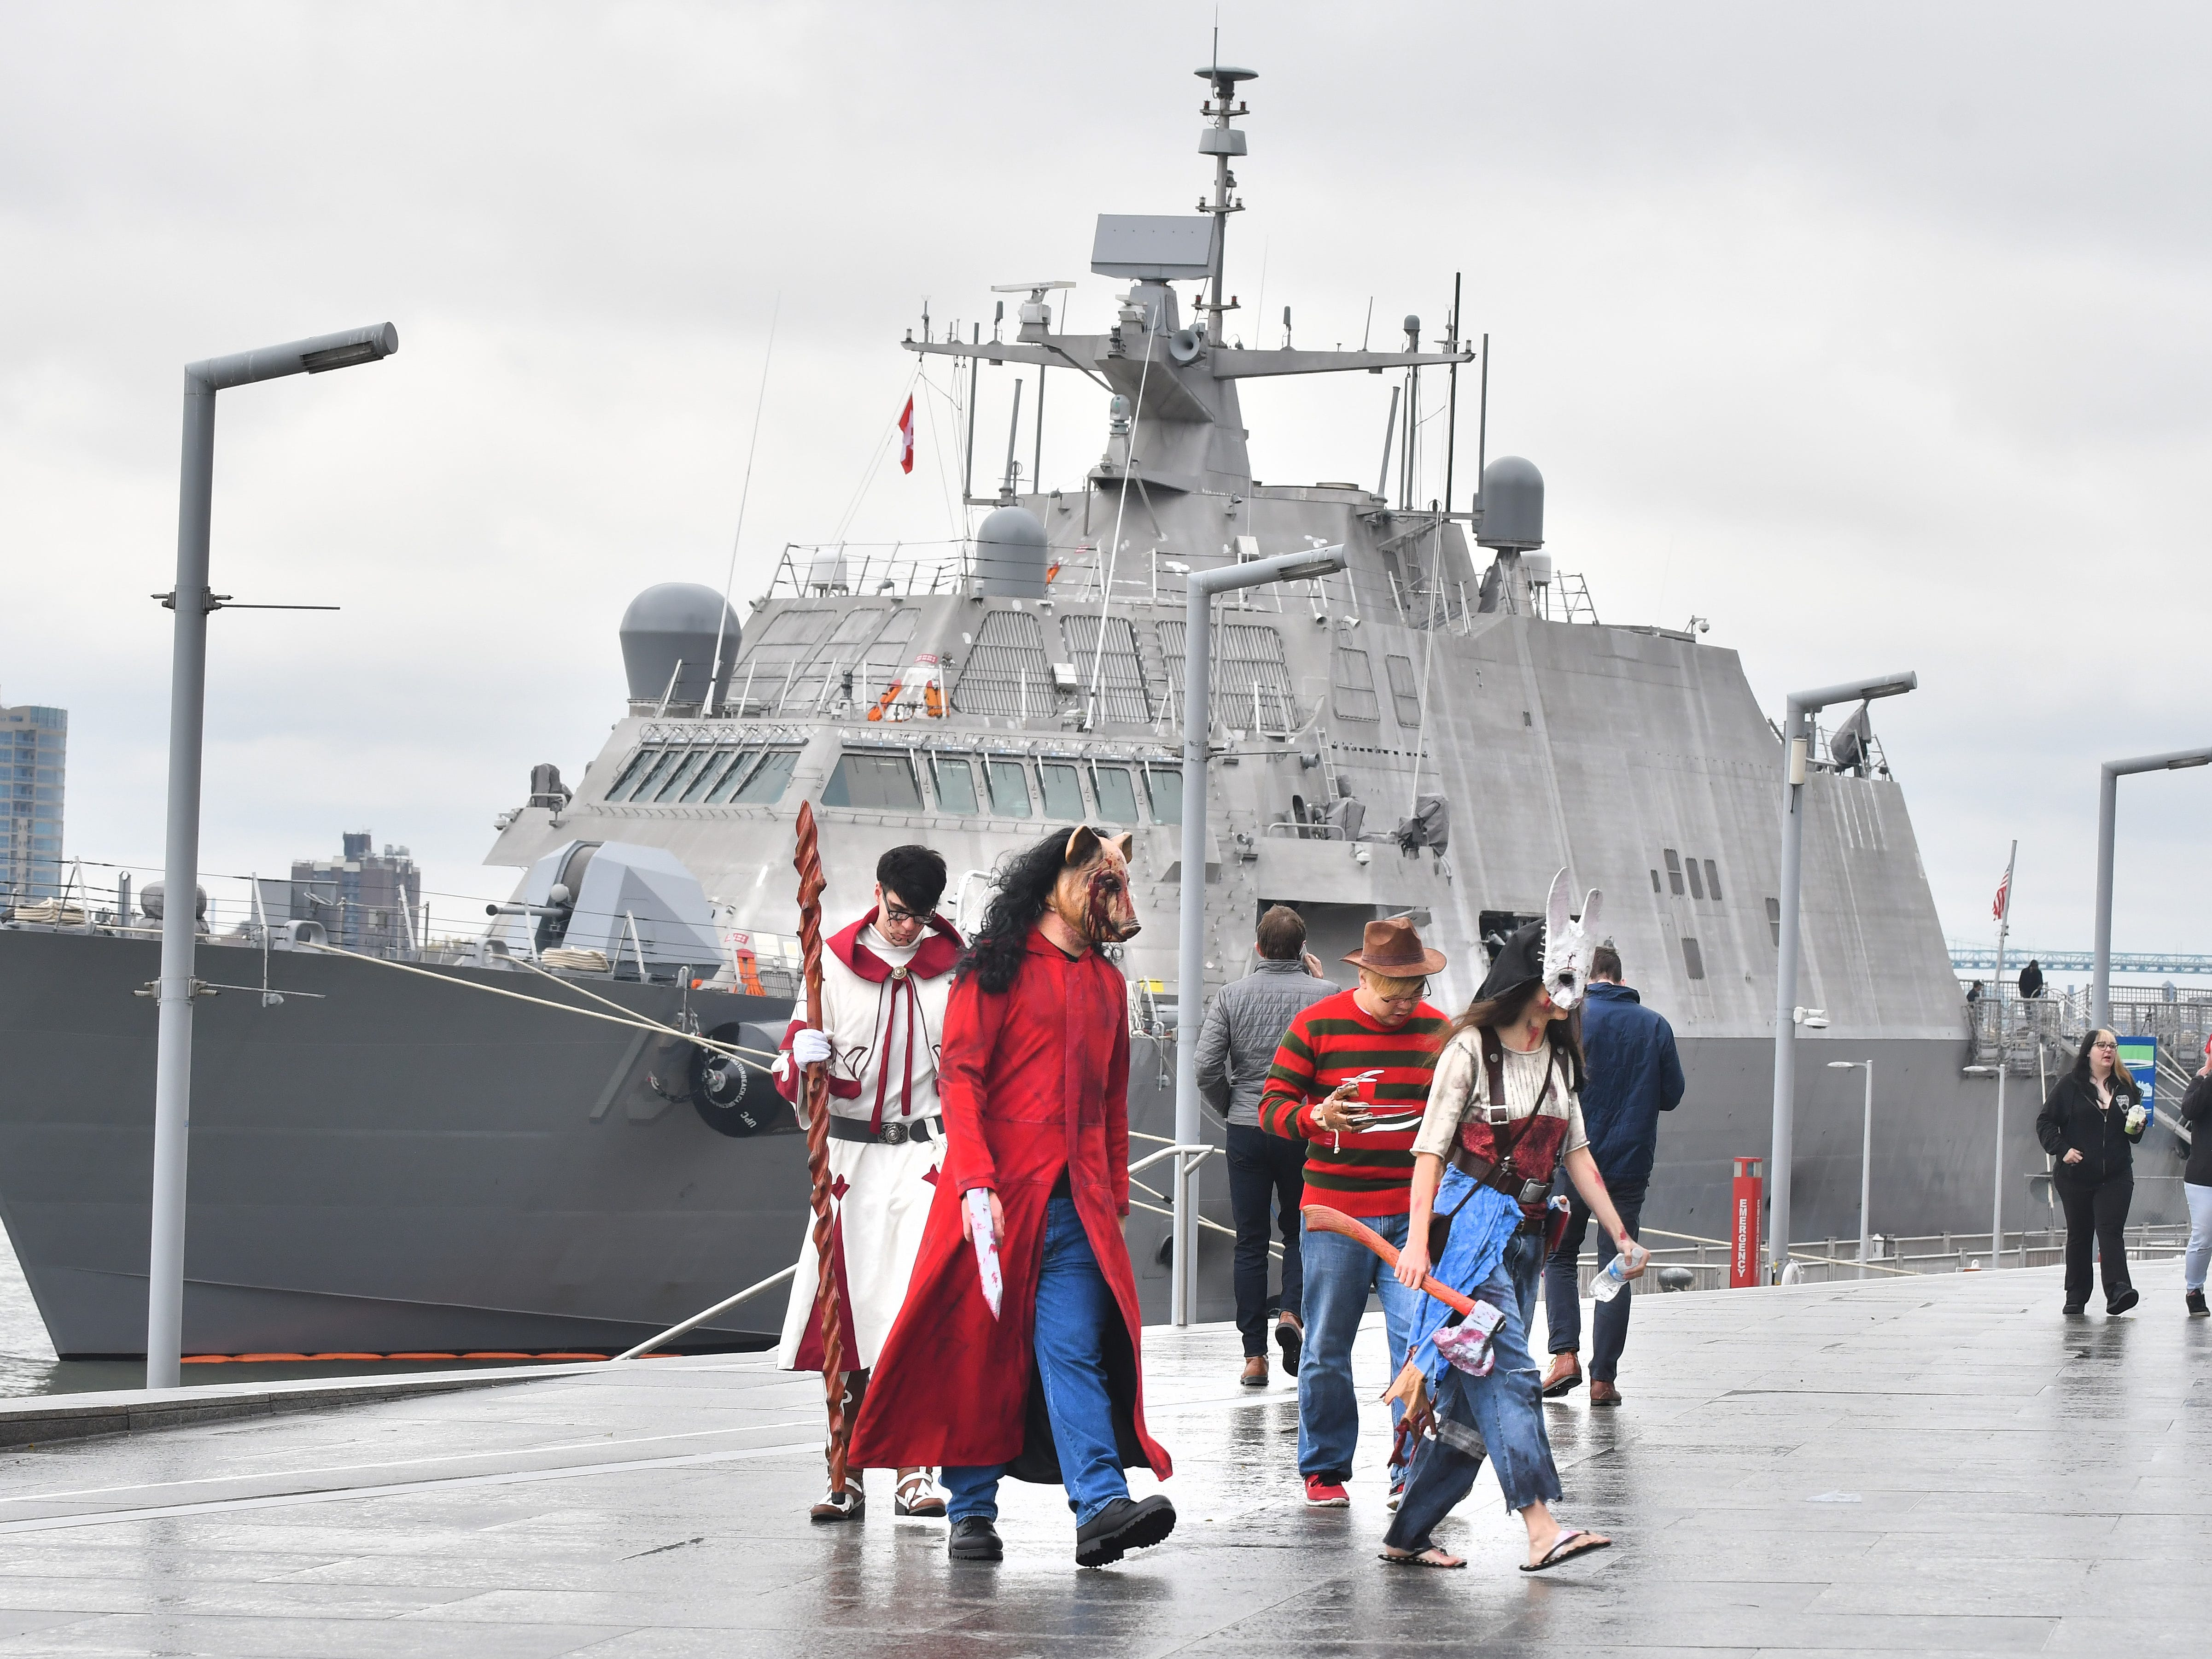 Participants in the 2018 Youmacon at Cobo Center walk along the Detroit Riverwalk past the USS Wichita (LCS-13), a Freedom-class littoral combat ship of the U.S. Navy temporarily docked behind the Renaissance Center. From left, Trevor Russ as a White Mage from Final Fantasy, Paul Krotine as The Pig and Amanda Stanglewicx as The Huntress from Dead by Daylight, and Joe Chuang as Freddie Krueger.